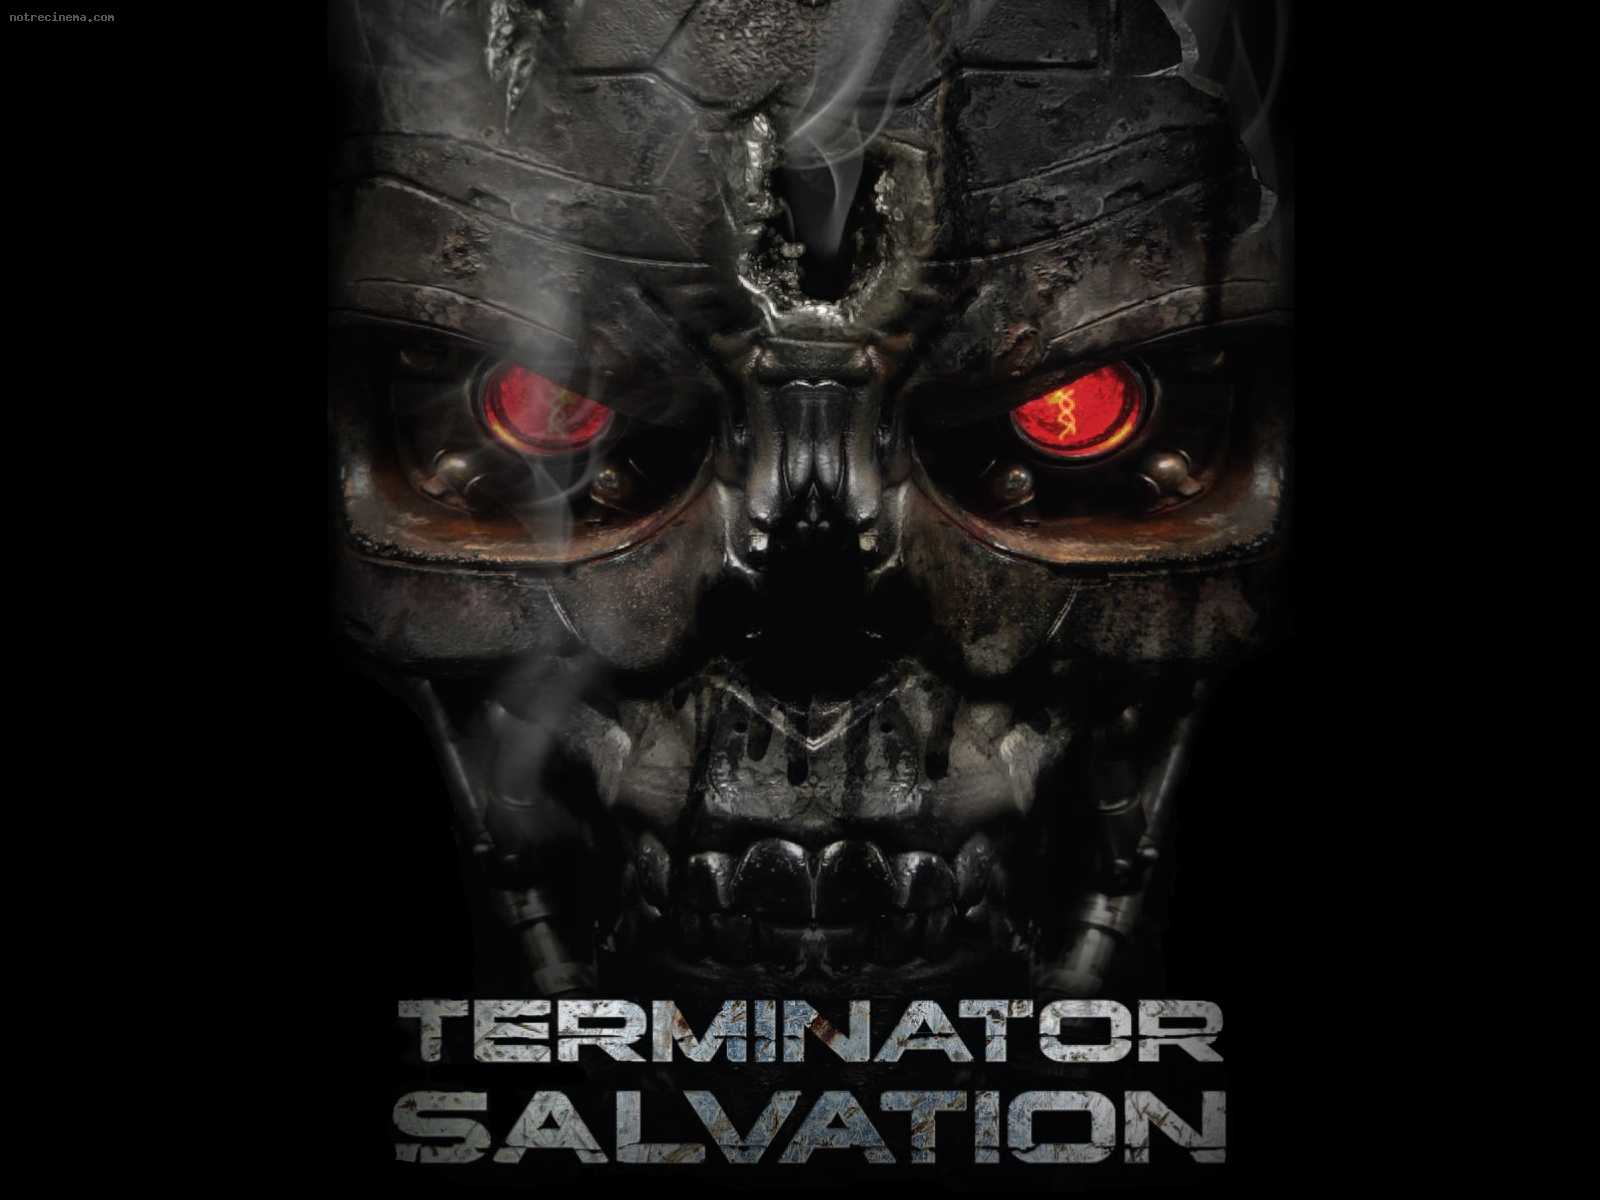 terminator salvation live wallpaper High resolution official theatrical movie poster (#1 of 16) for terminator genisys (2015) image dimensions: 1753 x 2544 directed by alan taylor starring arnold schwarzenegger, jason clarke, emilia clarke, jai courtney.